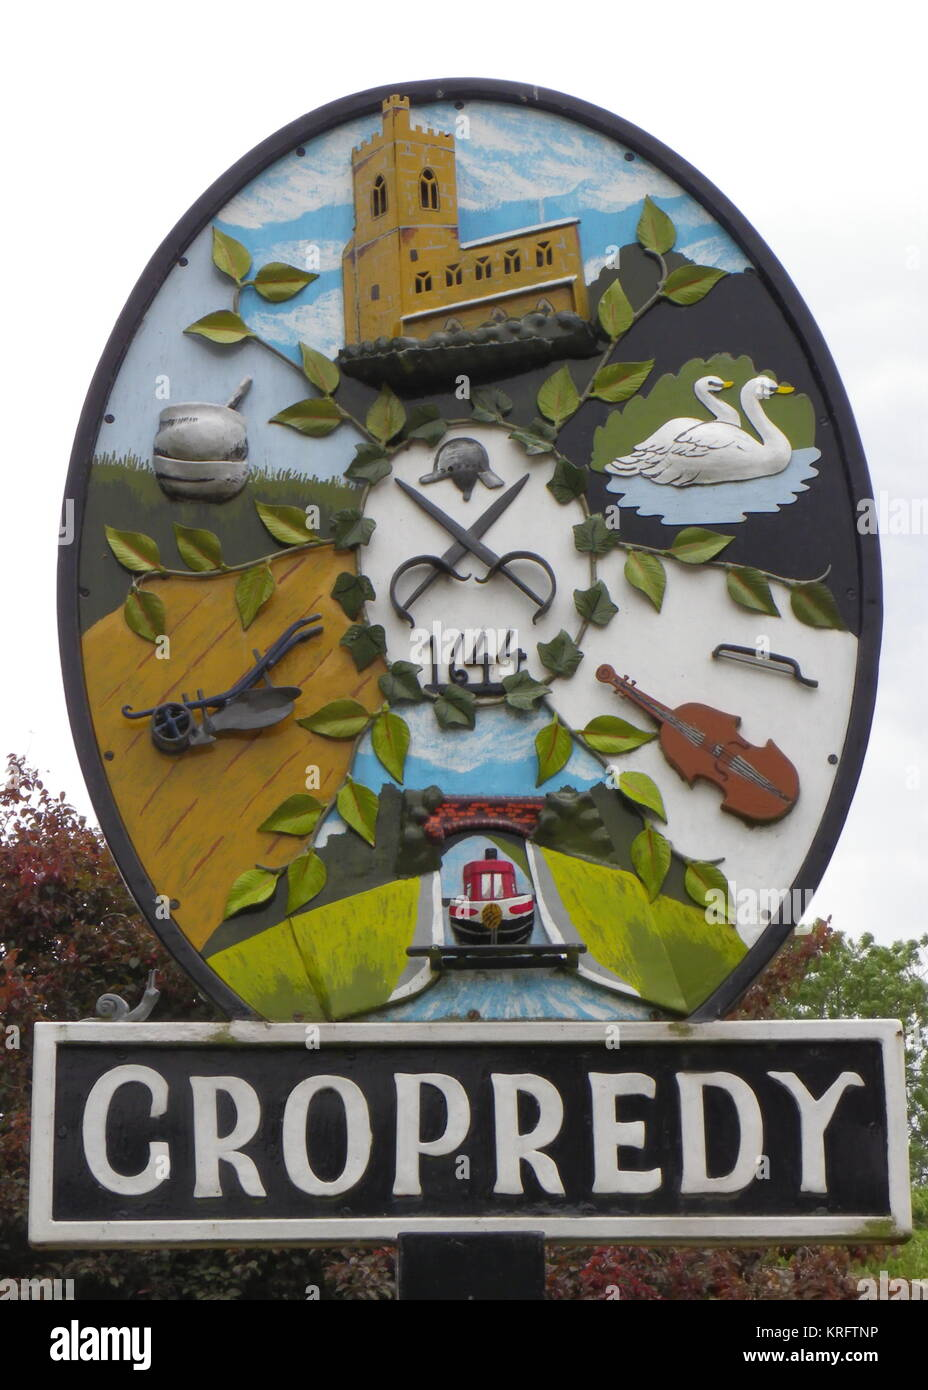 The village sign of Cropredy, near Banbury, Oxfordshire.      Date: circa 2011 - Stock Image